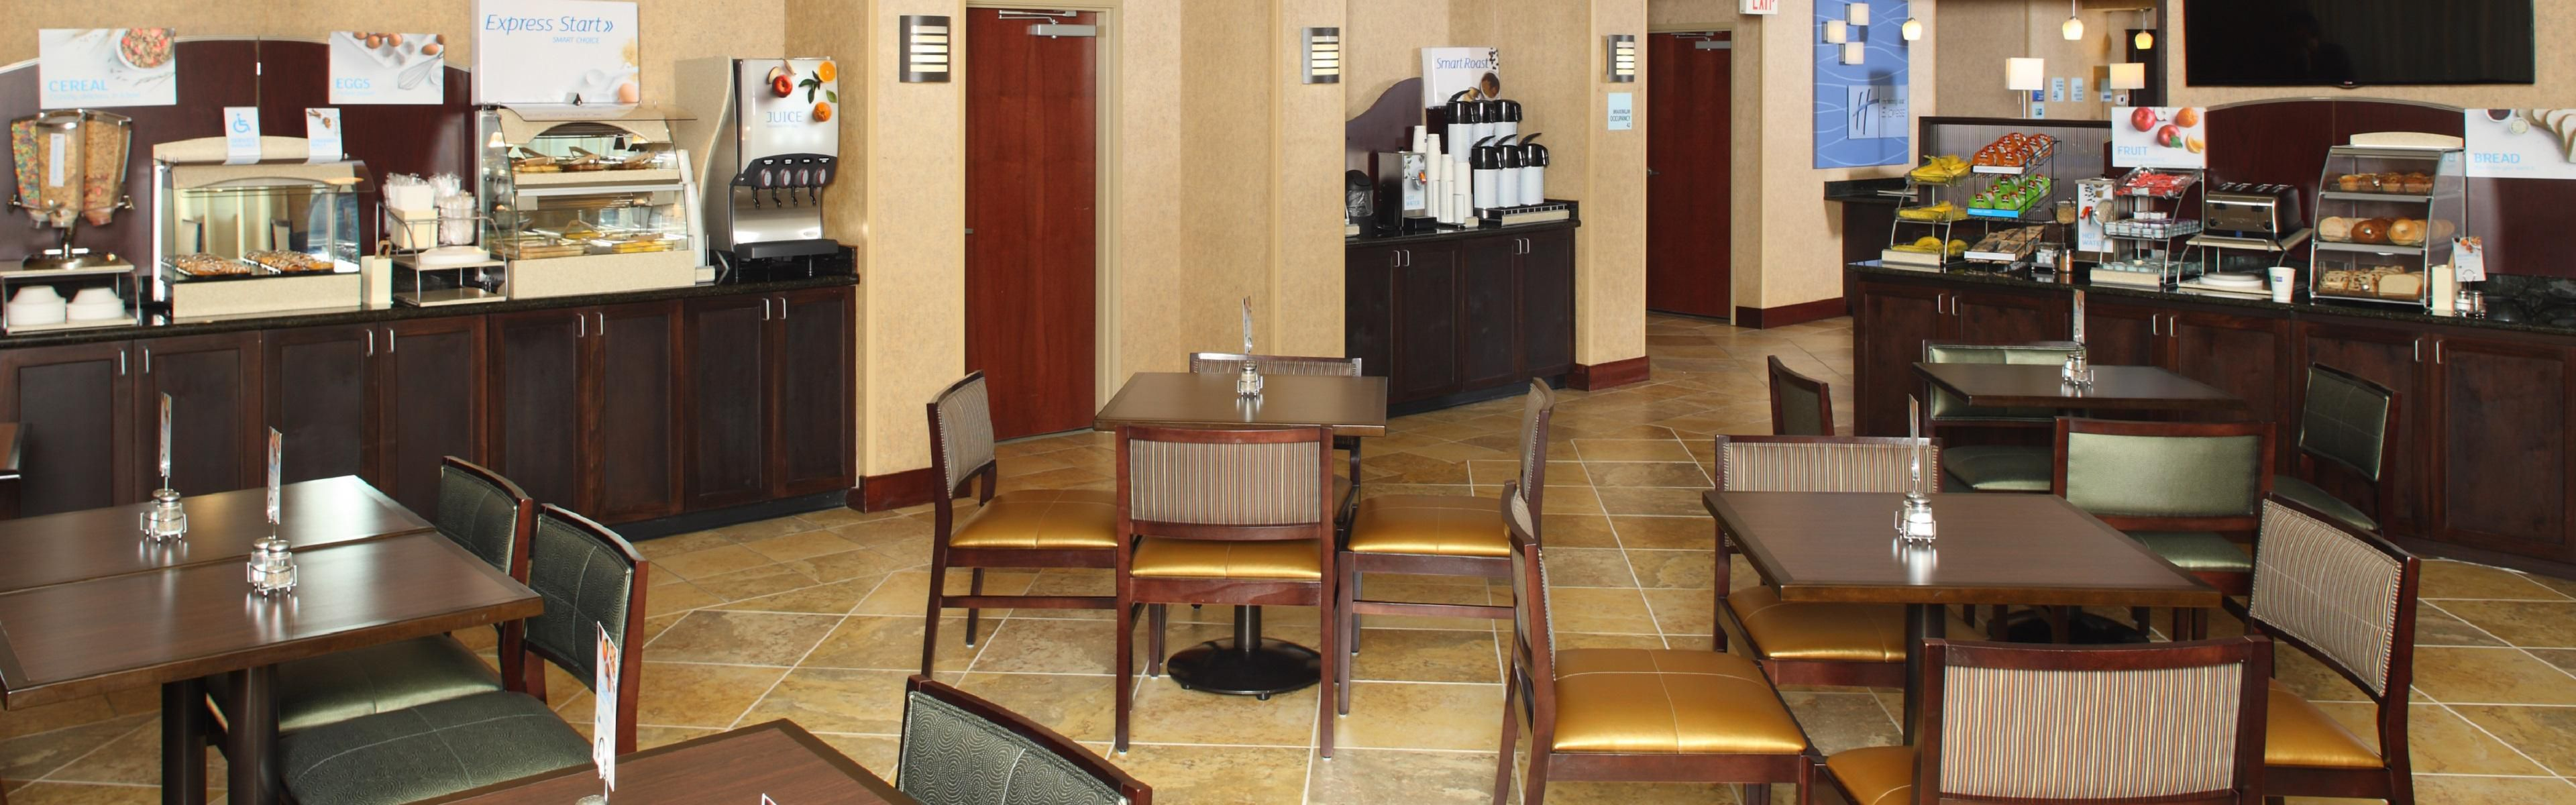 Holiday Inn Express & Suites Mobile West - I-65 image 3